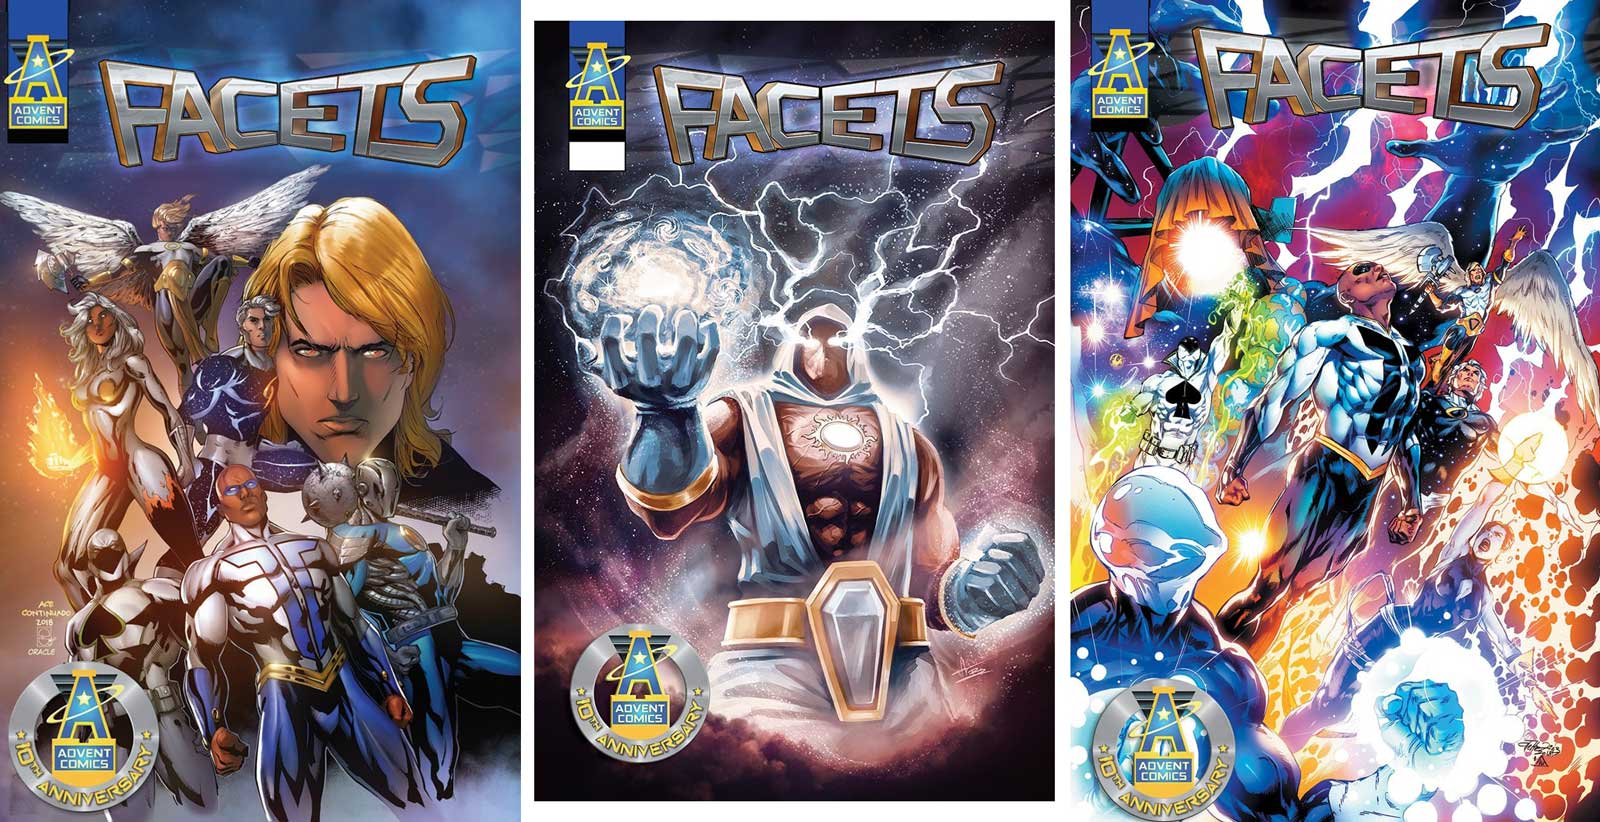 Facets will offer multiple covers including an Andy Smith Variant Spot UV Hardcover, a Netho Diaz Metal Cover and a Limited Trinity Extended Edition